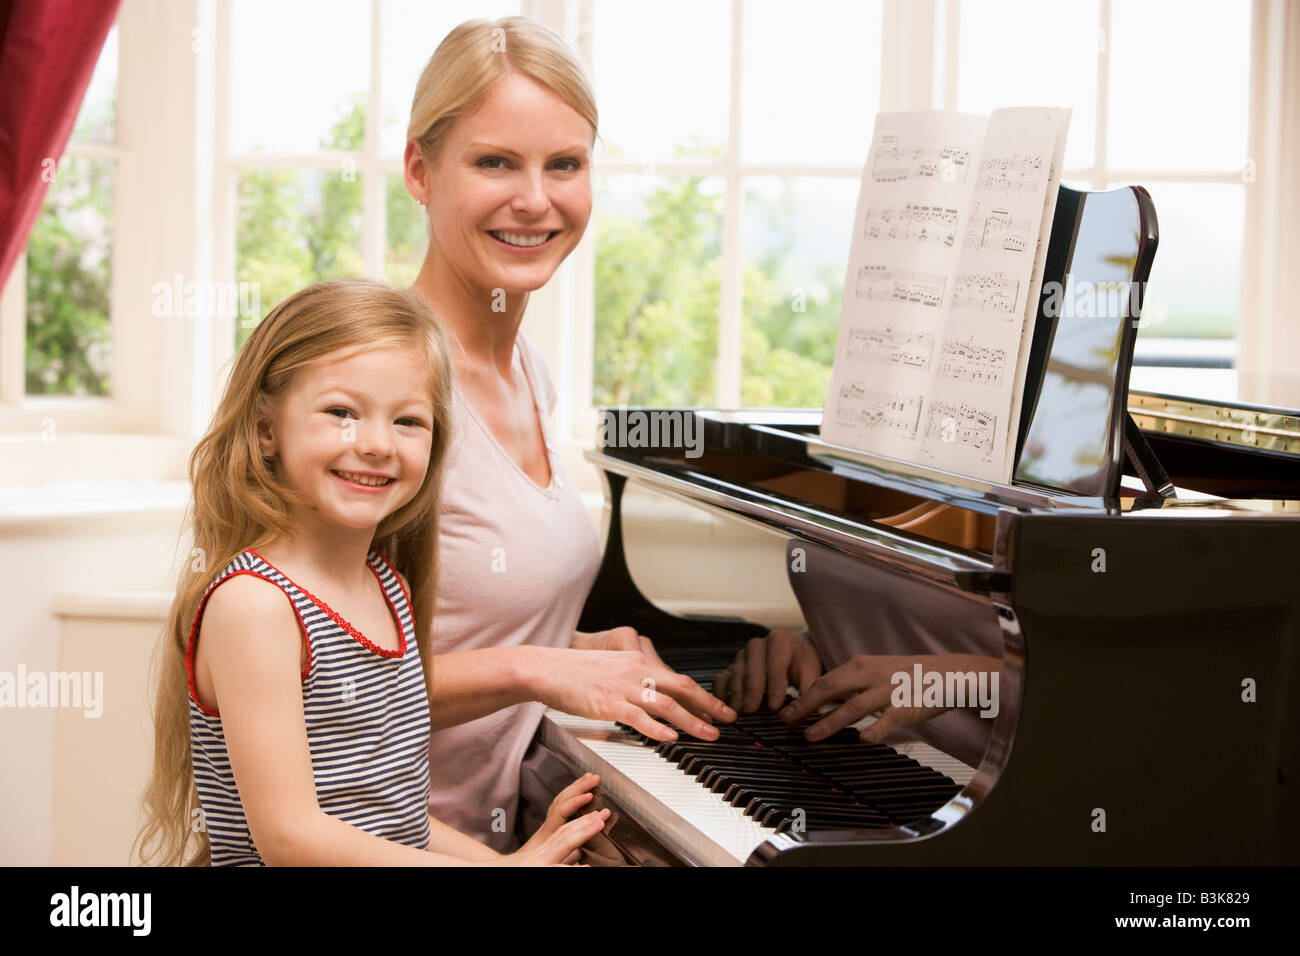 Woman and young girl playing piano and smiling - Stock Image